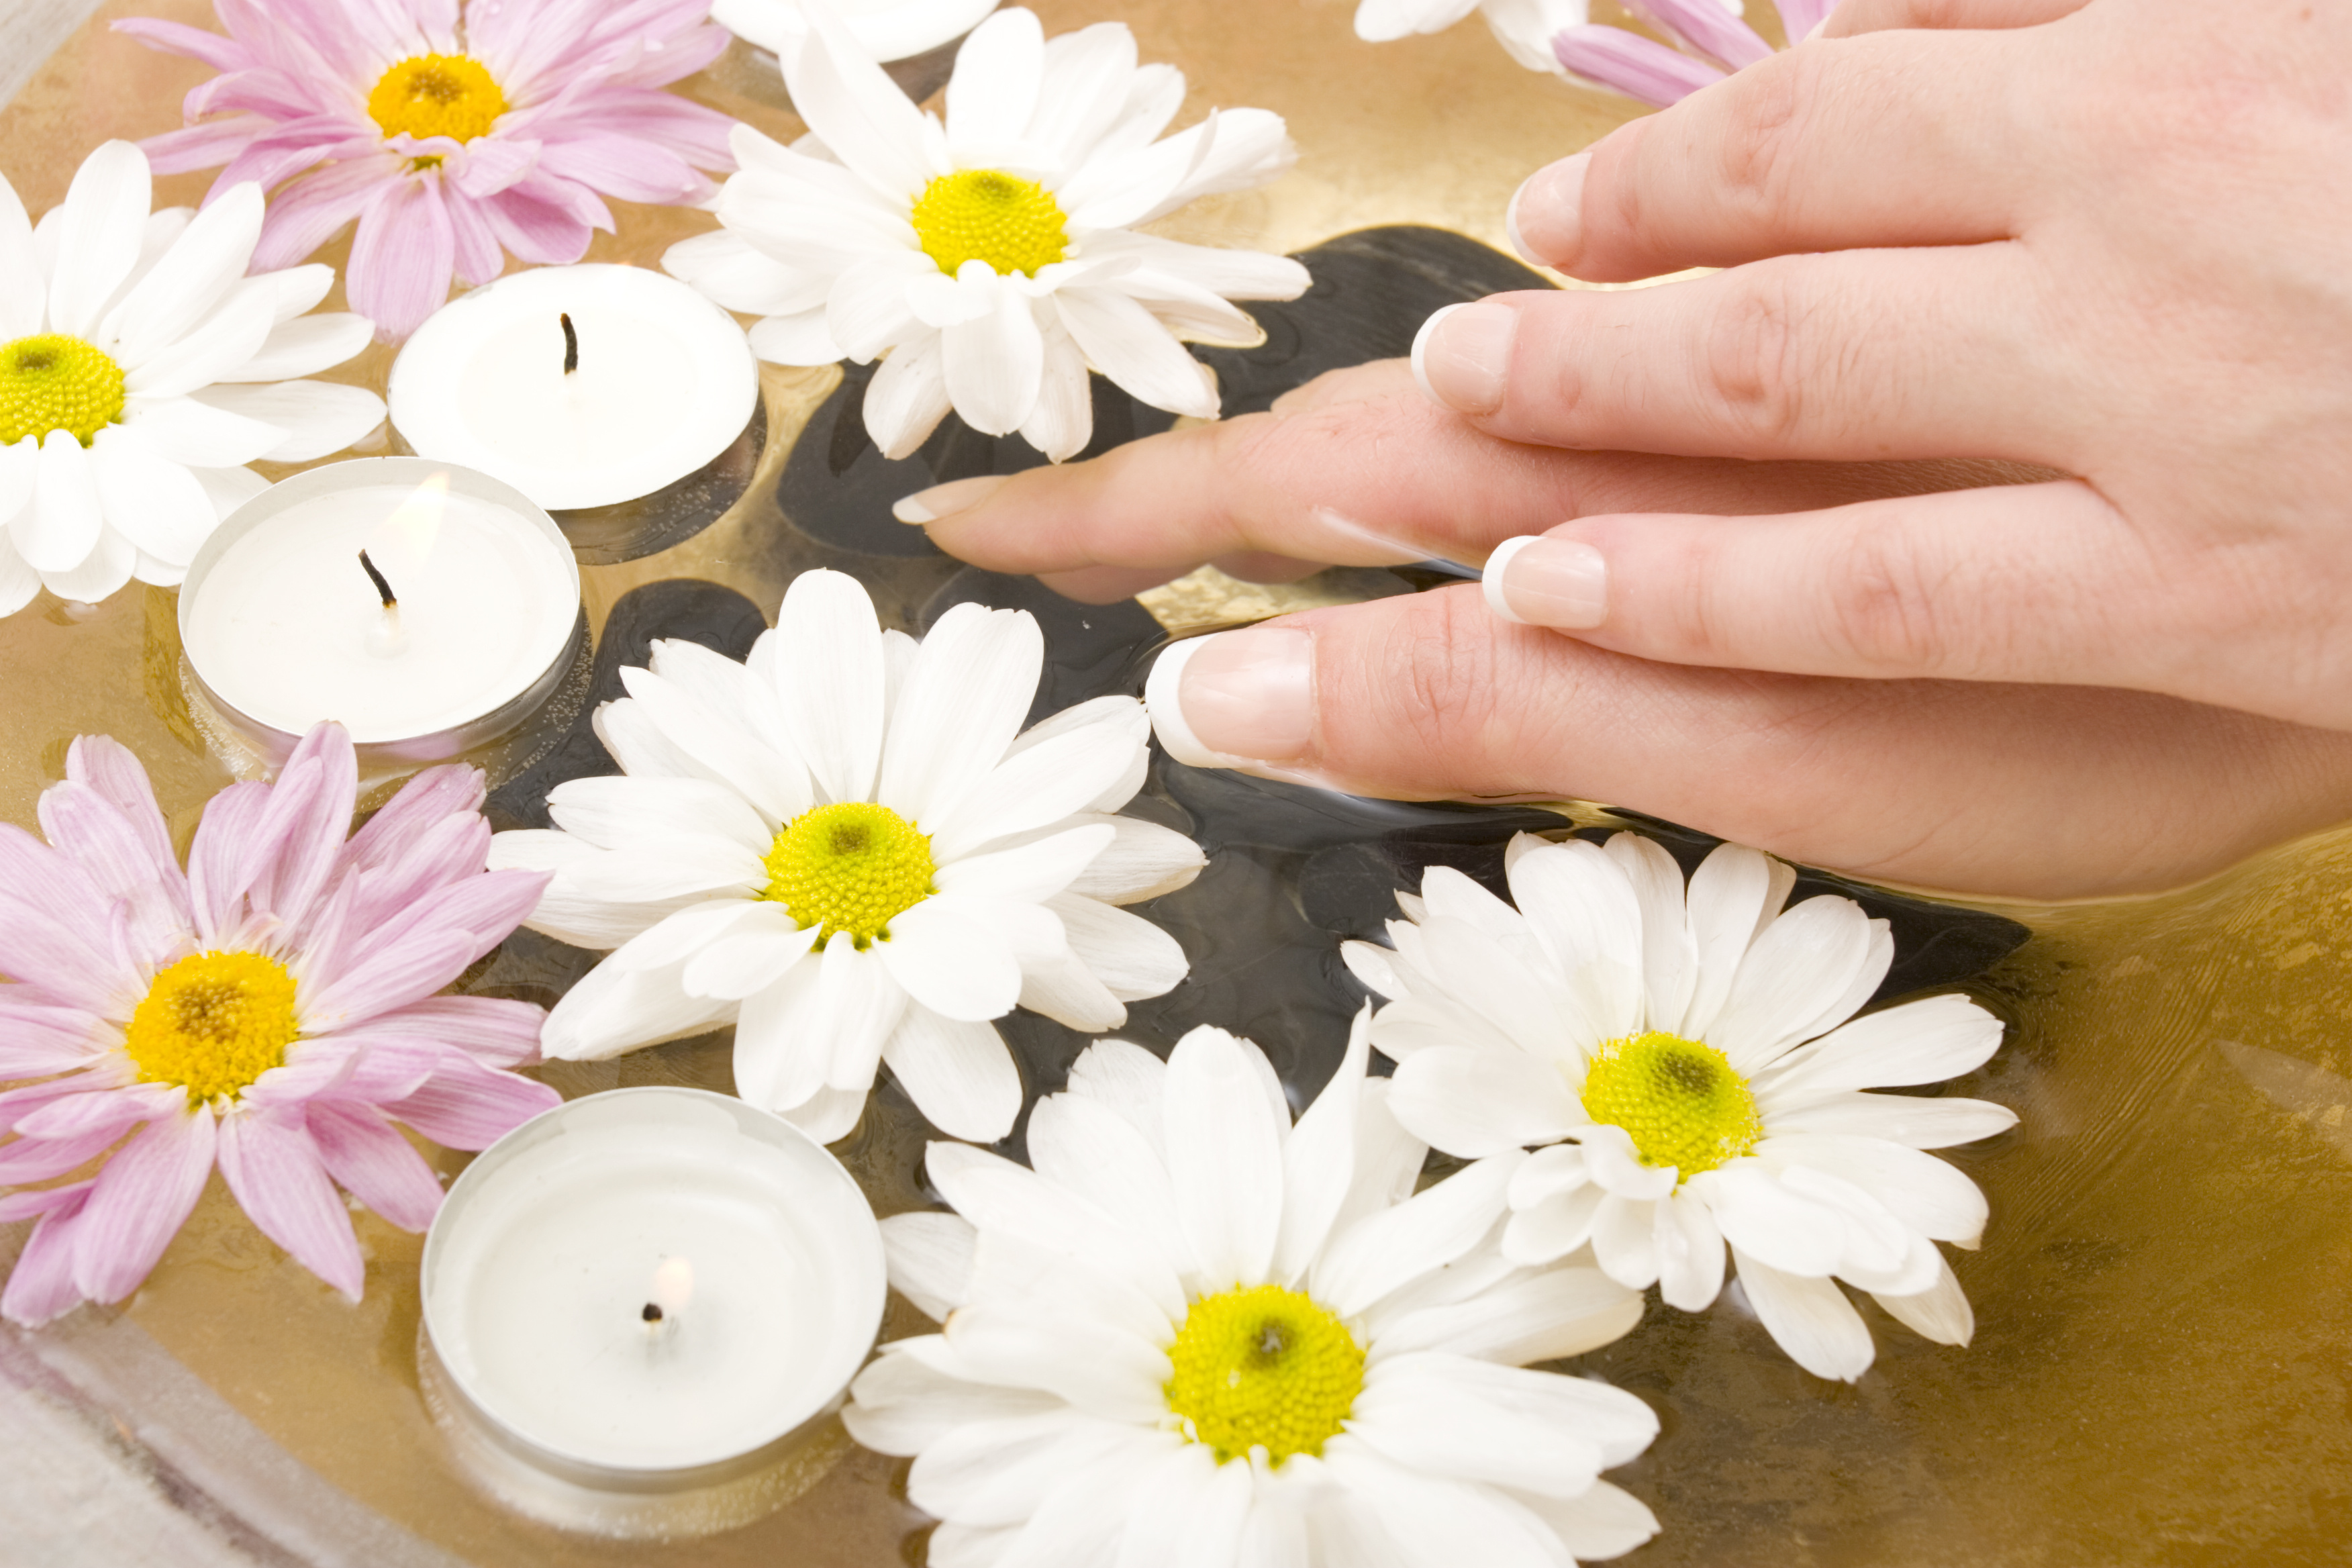 Beauty Tips – How to Take Care of Your Nails and Hands